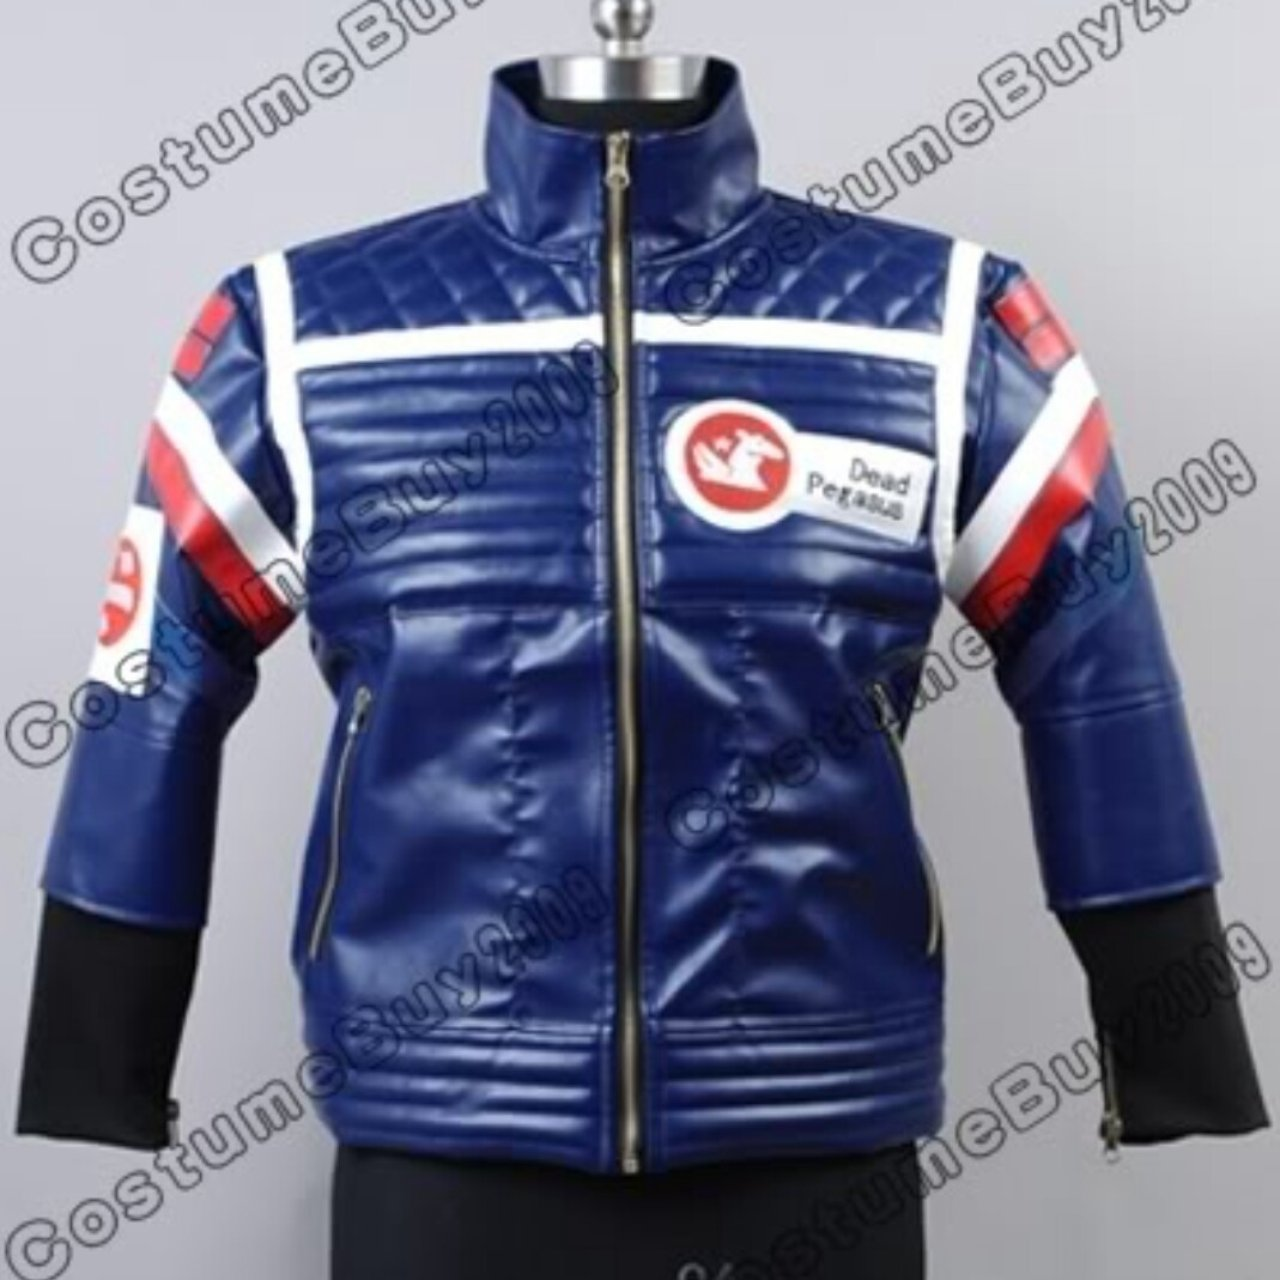 I M Selling My Party Poison Cosplay Jacket Like The One Way Depop